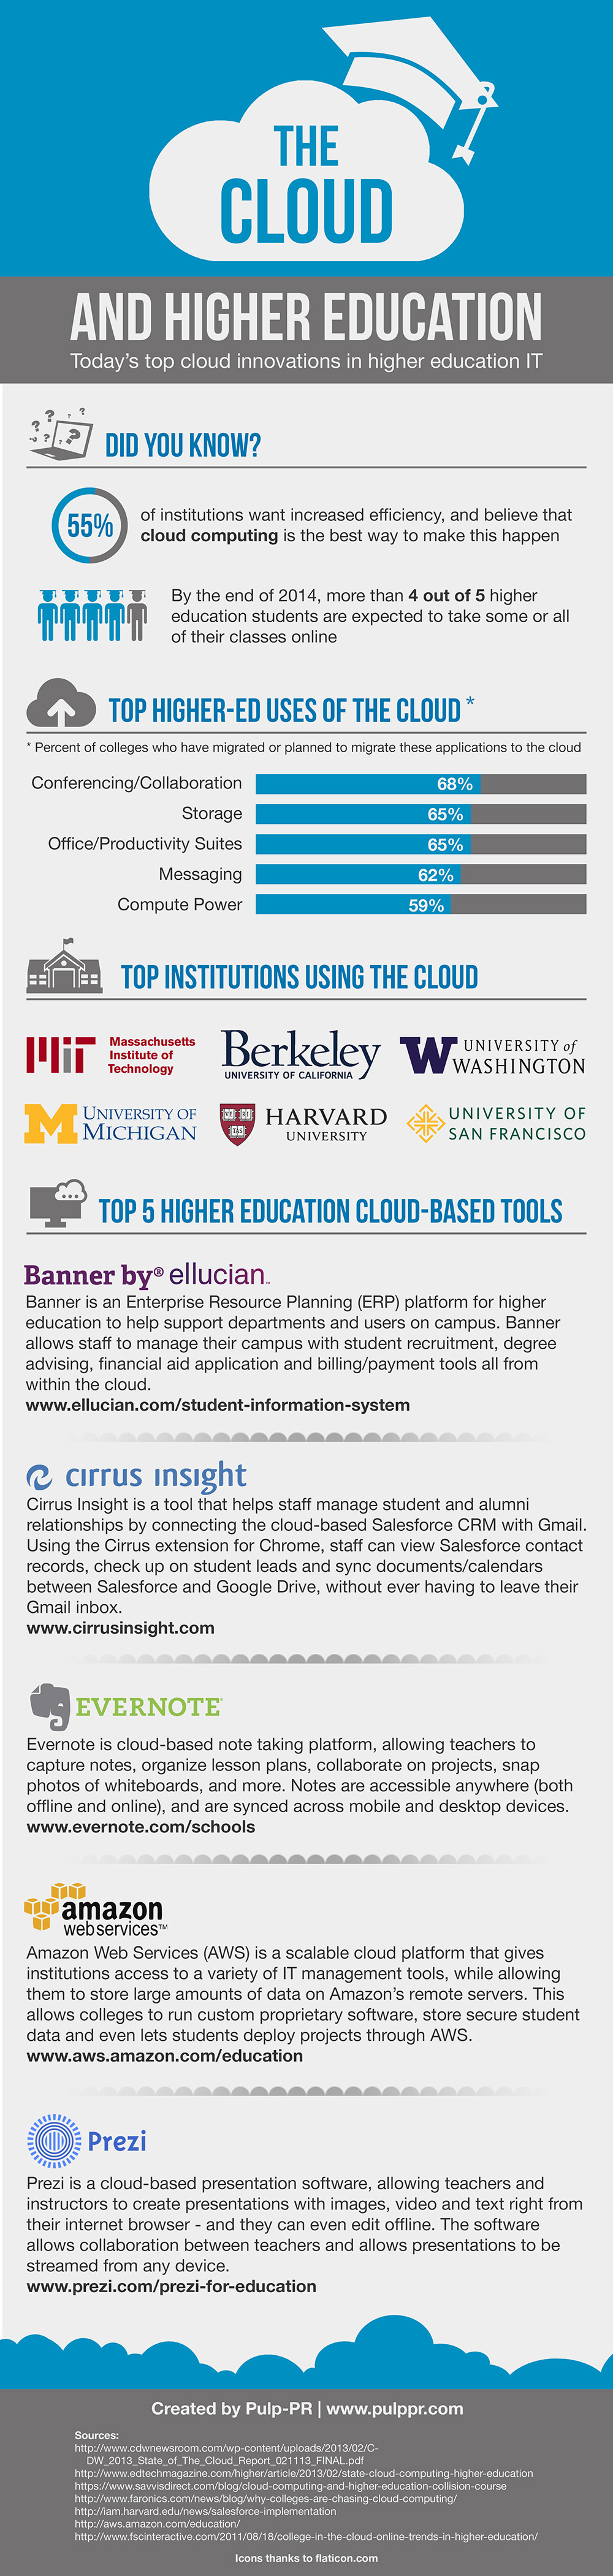 Cloud Infographic: Higher Education